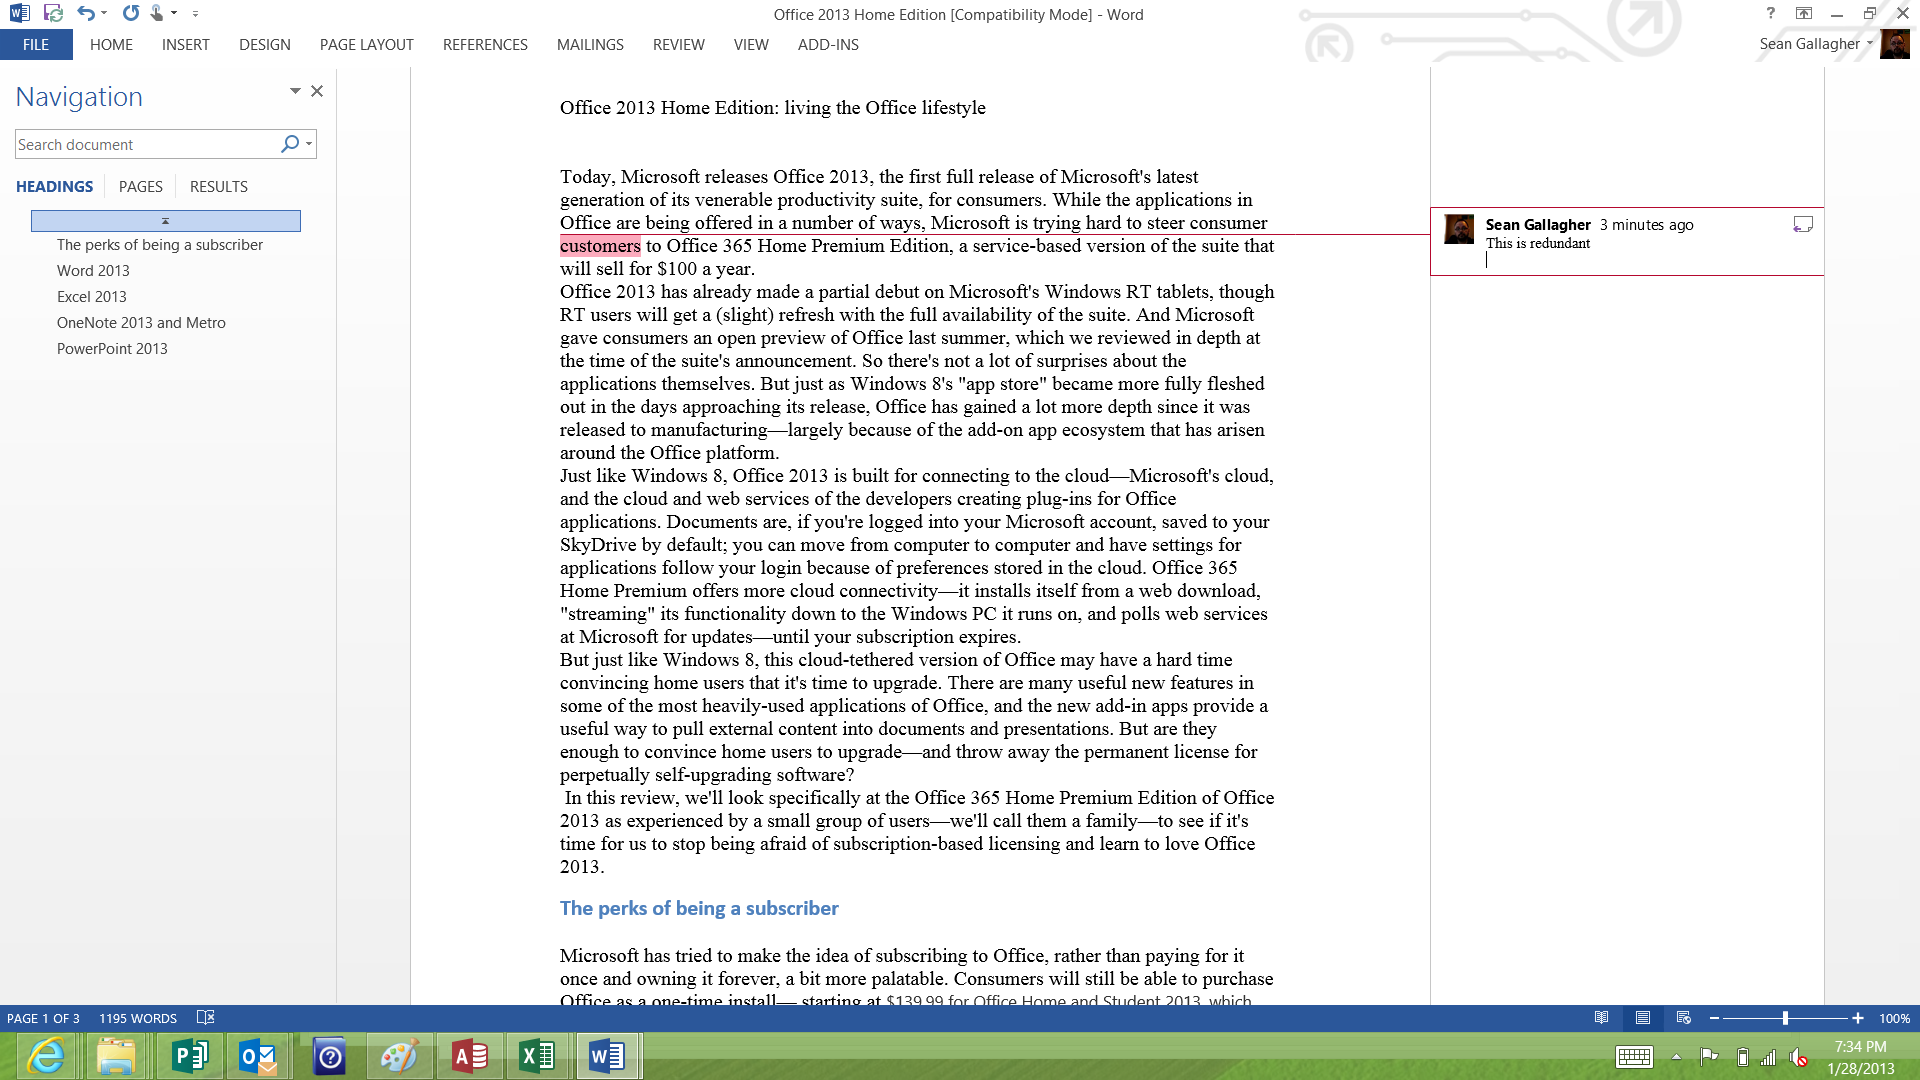 The clean, painless reader-oriented navigation view in Word 2013, with the simplified markup for comments demonstrated.